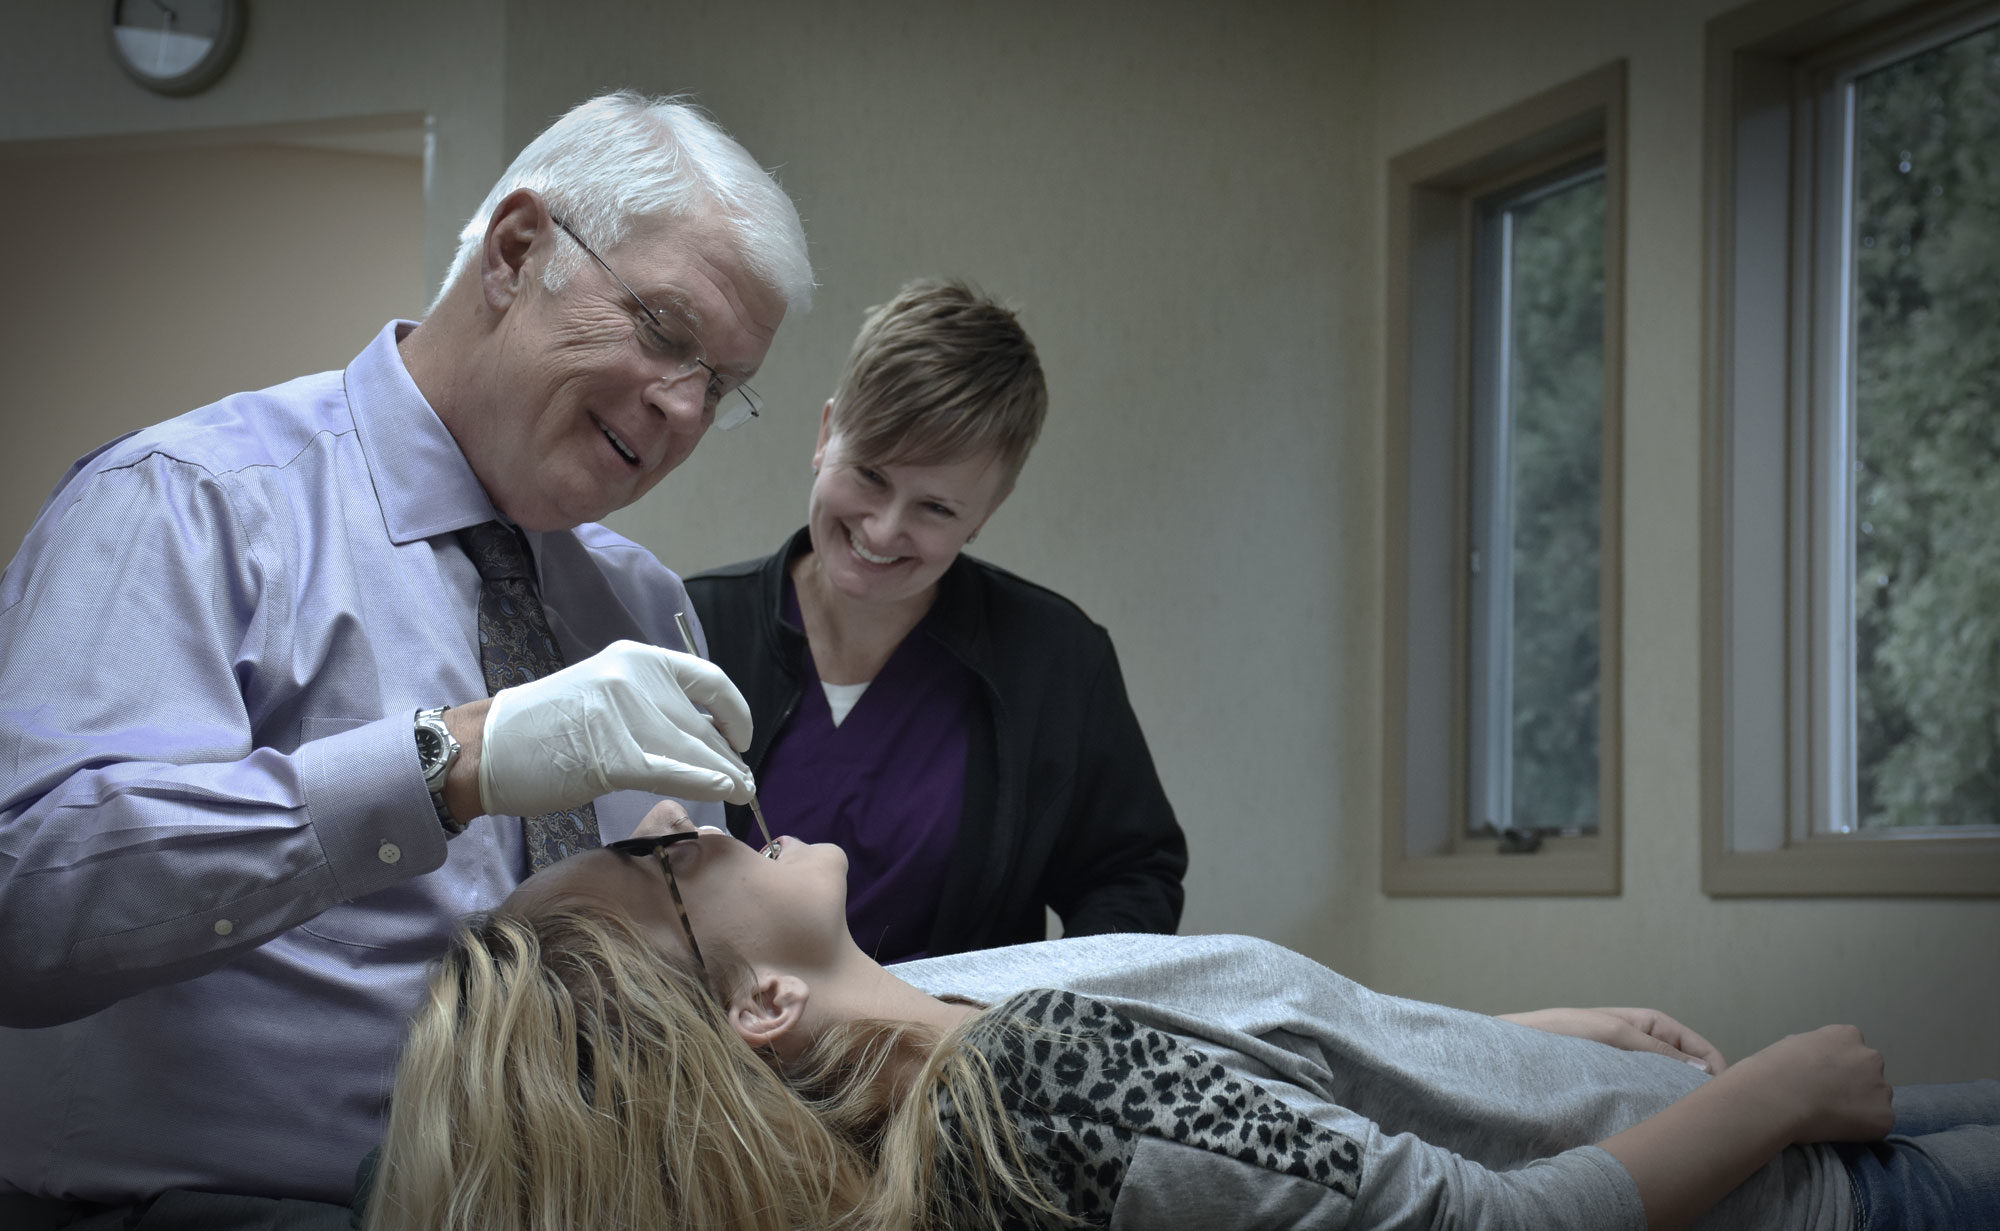 Dr. Rykovich and a female assistant examining a female patient's teeth